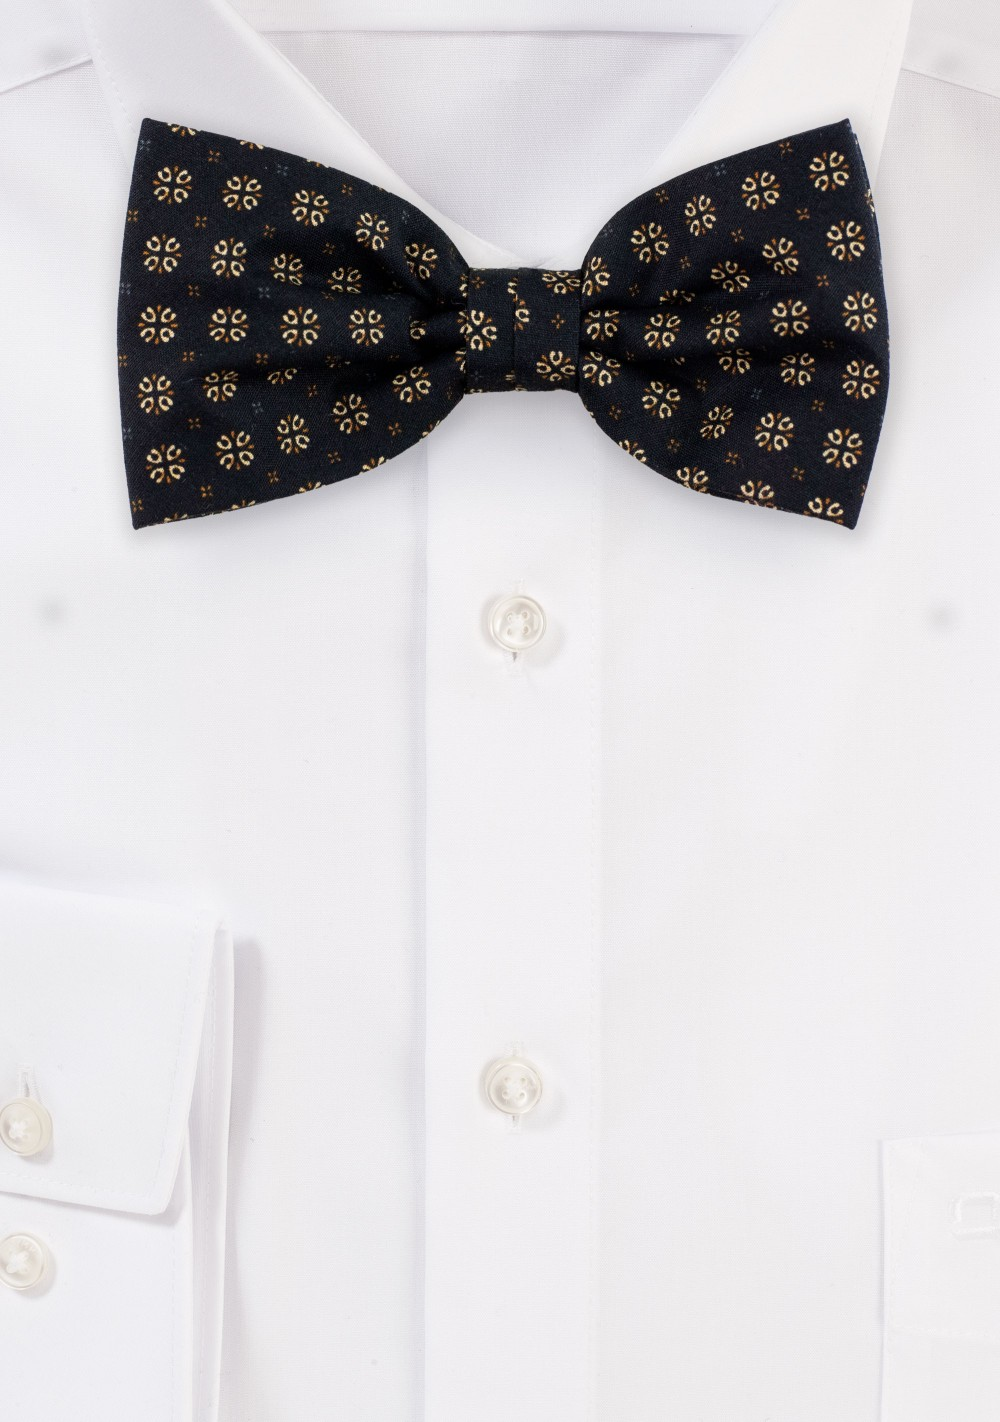 Black and Gold Geometric Print Bow Tie